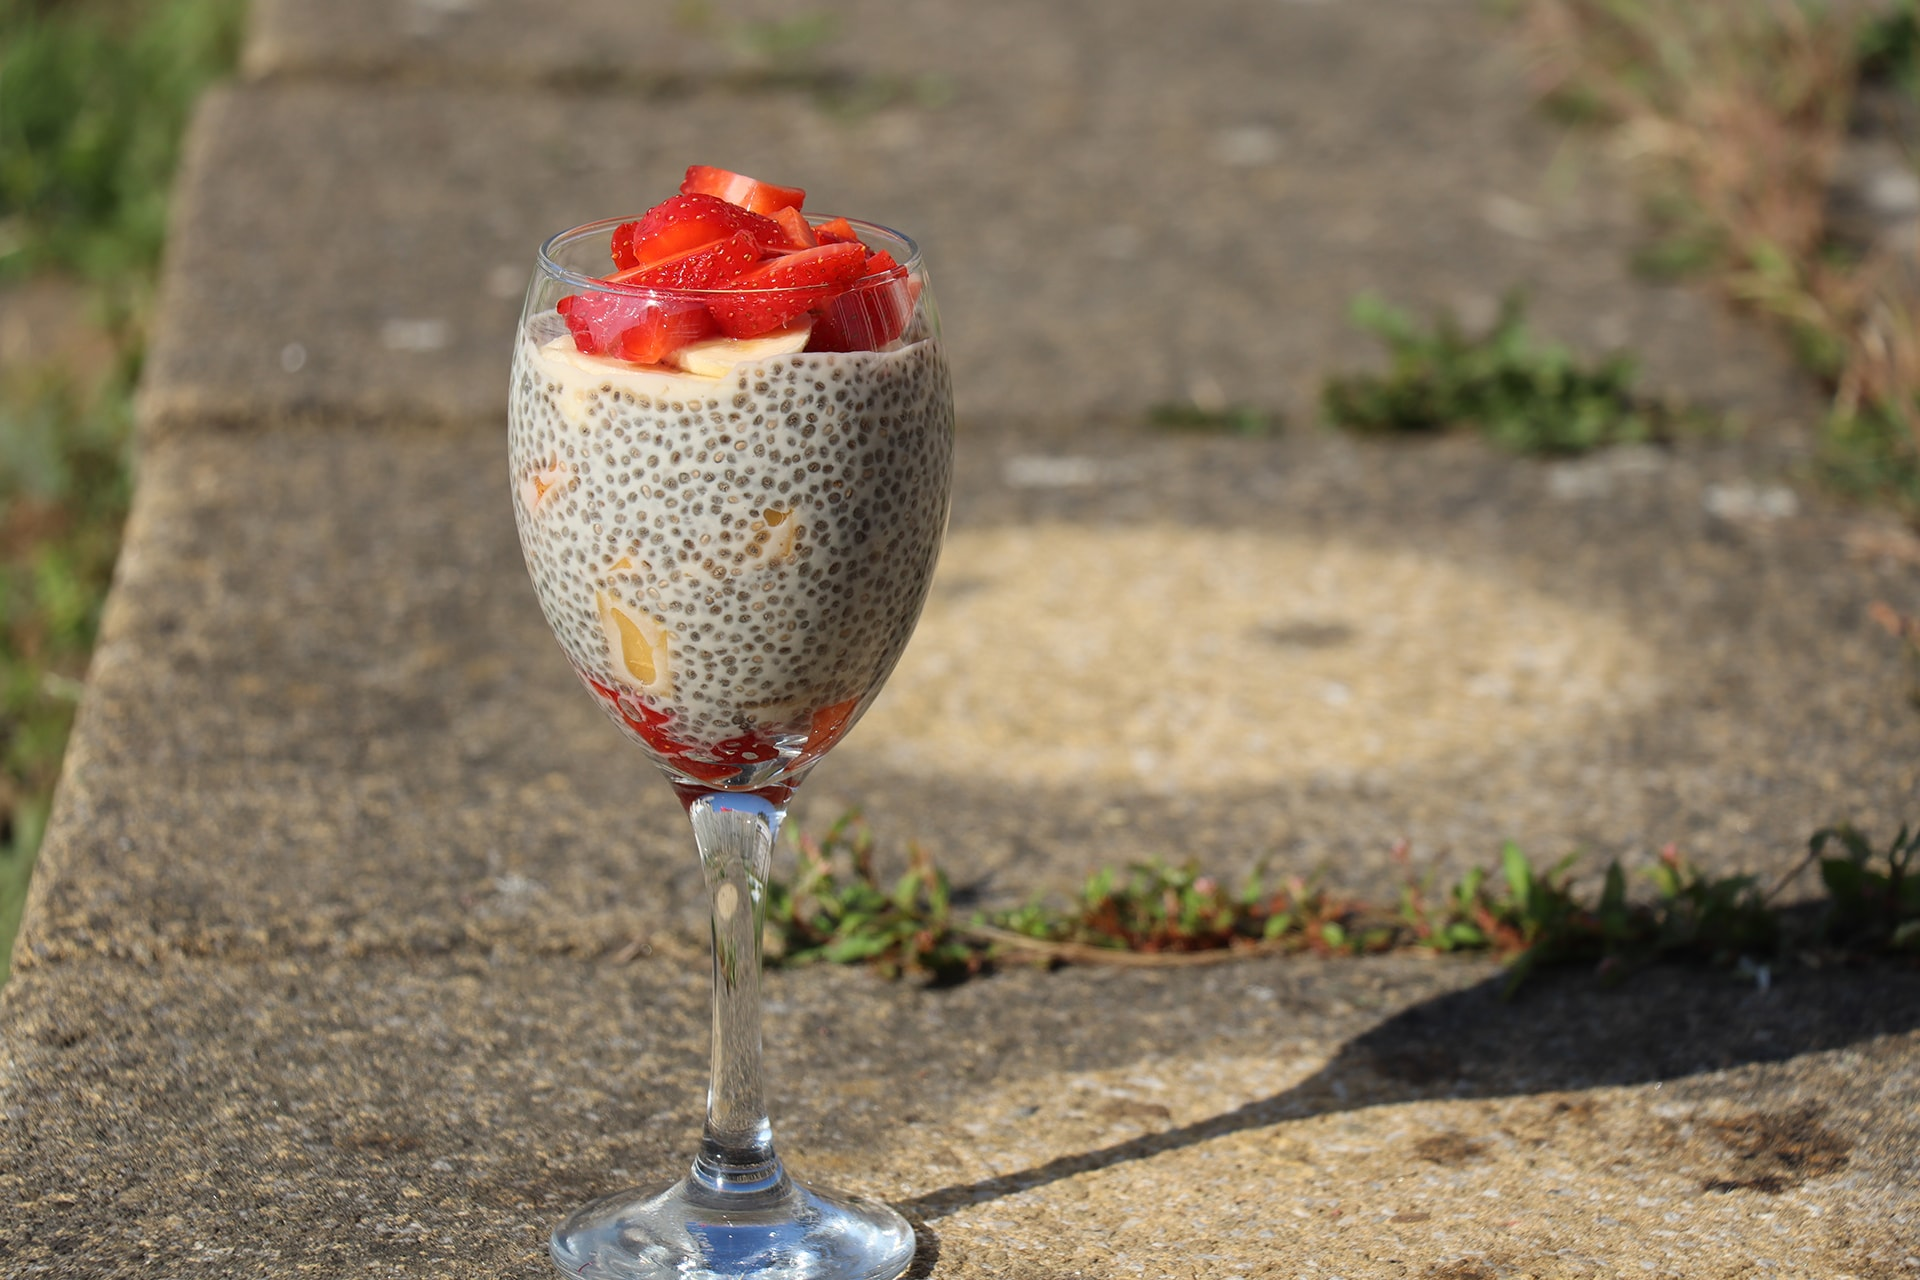 Chia Seed Pudding with strawberries